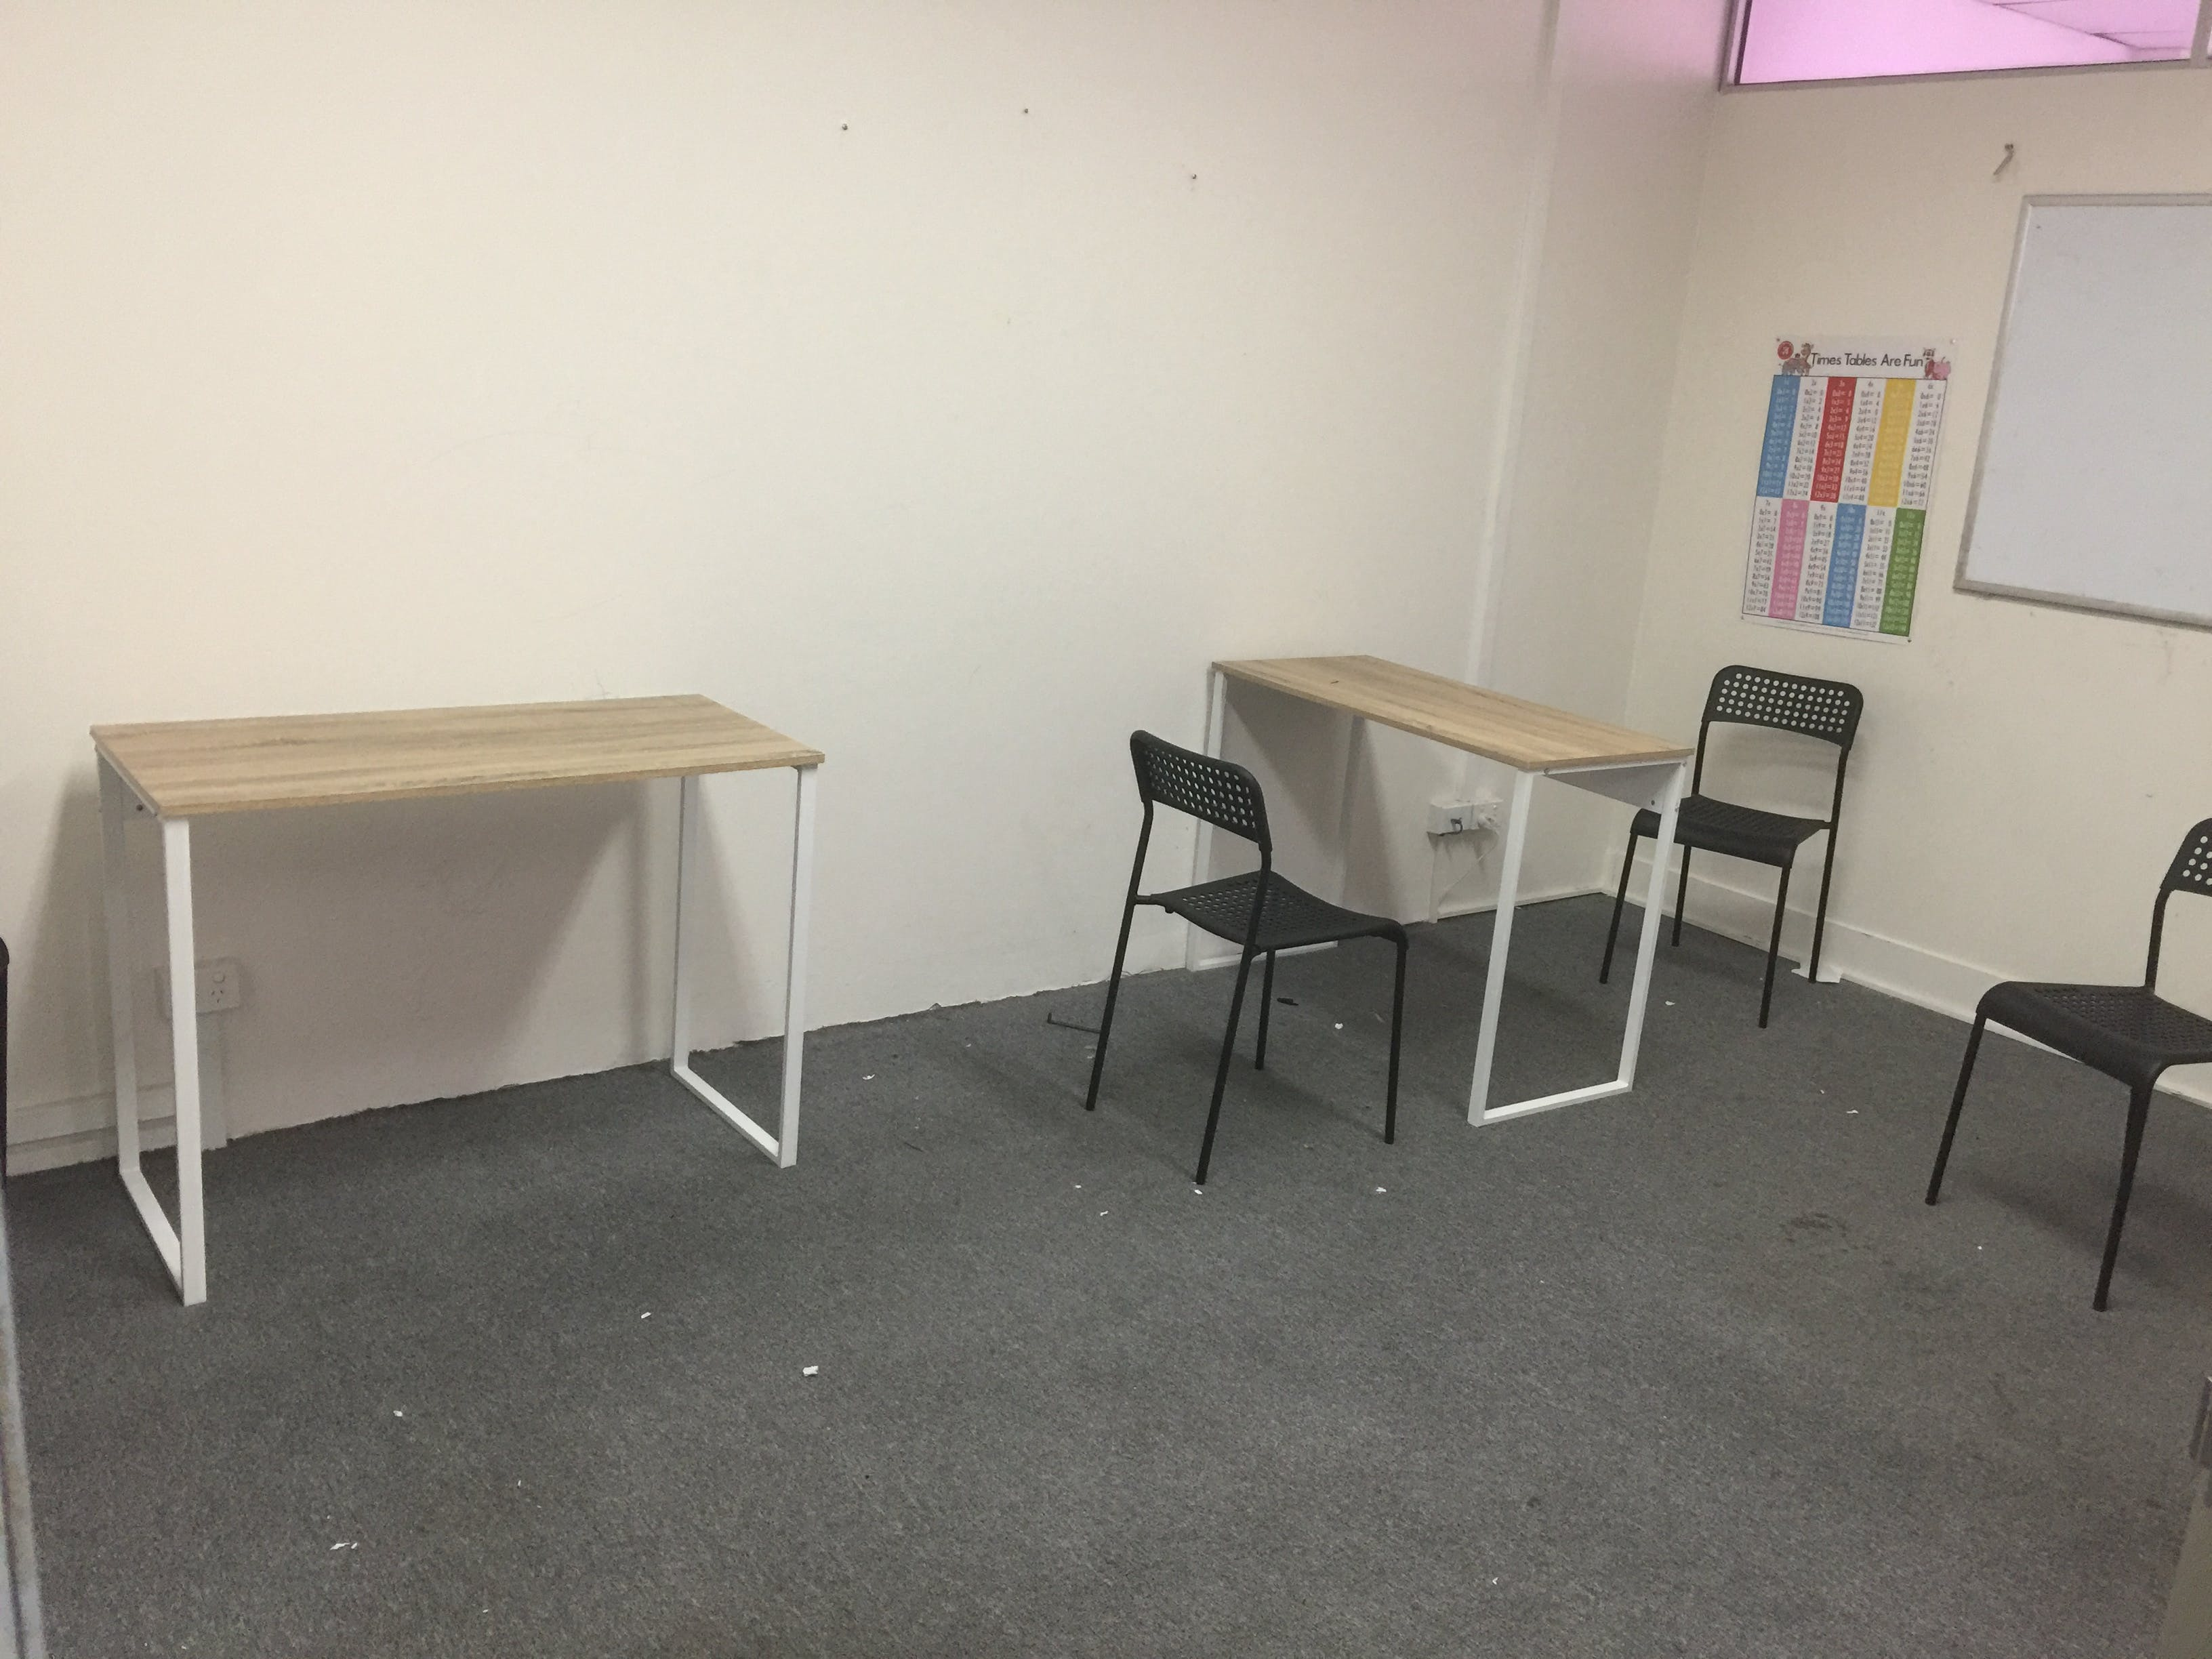 Shared office at Auburn tutoring and office space, image 6